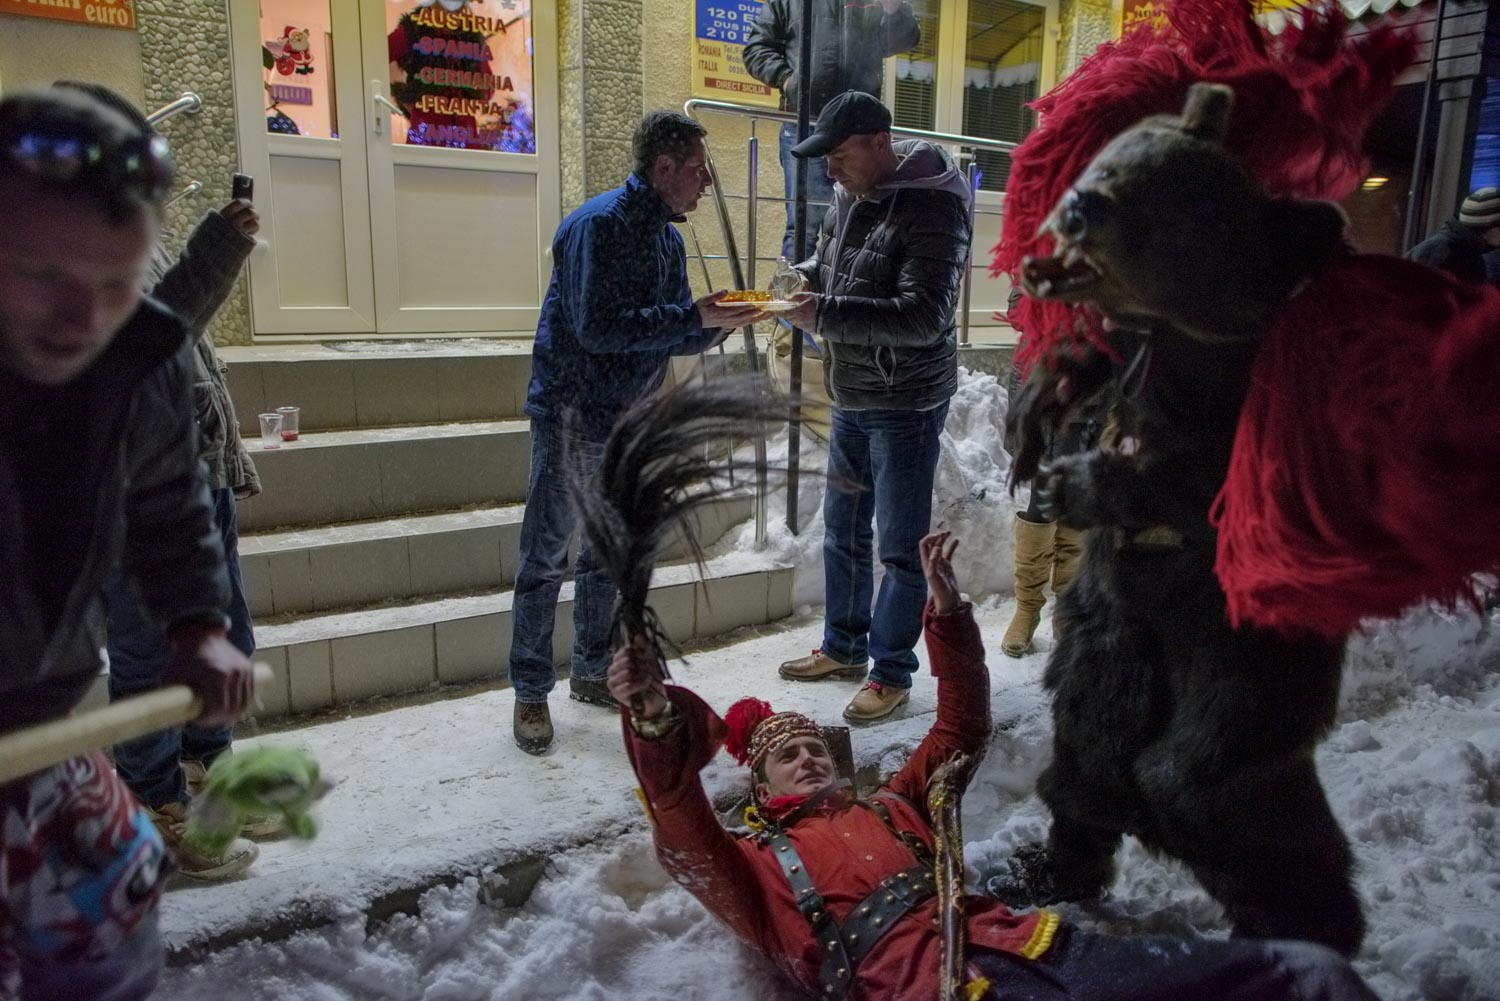 After winning first place at Comăneşti's annual Bear Parade, Toloacă's troupe celebrates in the streets, singing, dancing, and toasting with homemade palinka liquor handed out by the locals. December 30, 2014. Comăneşti town, Bacău county, Romania.